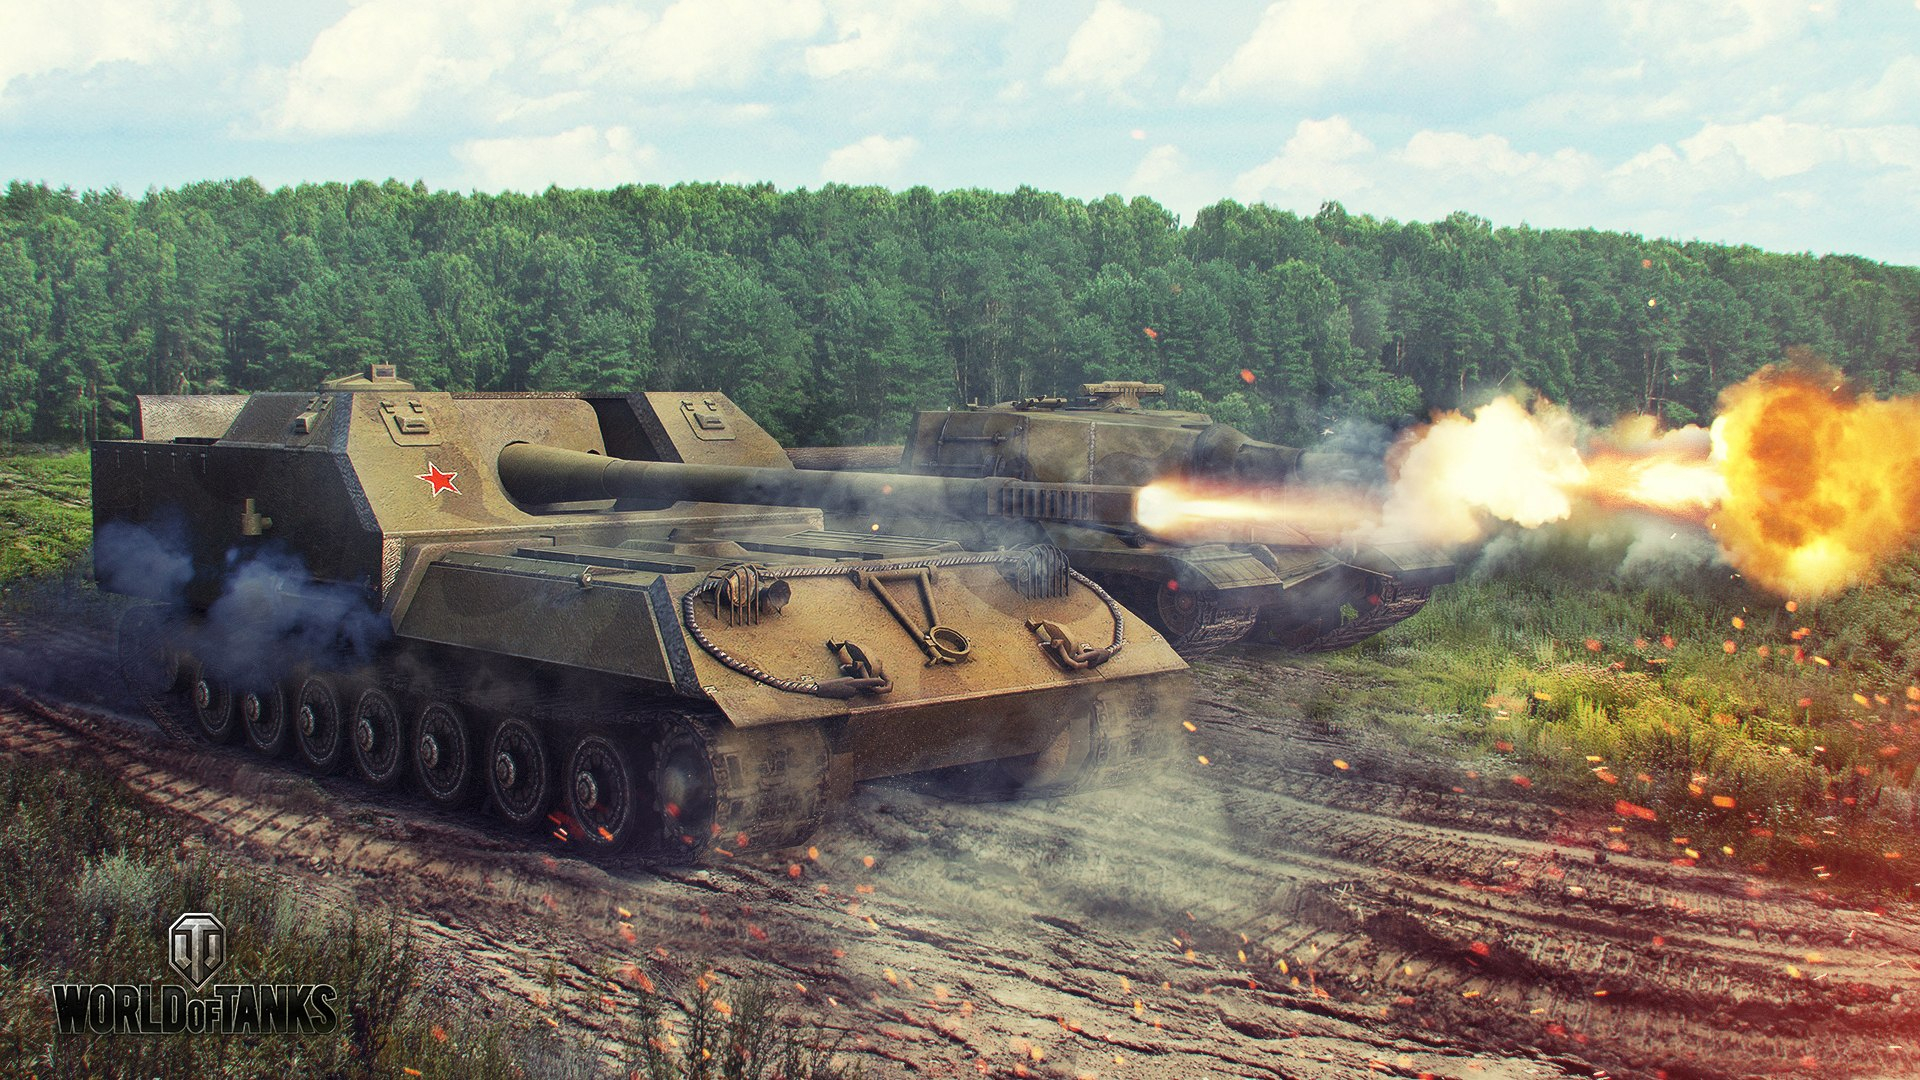 WhQF7ElFrRk.jpg - World of Tanks